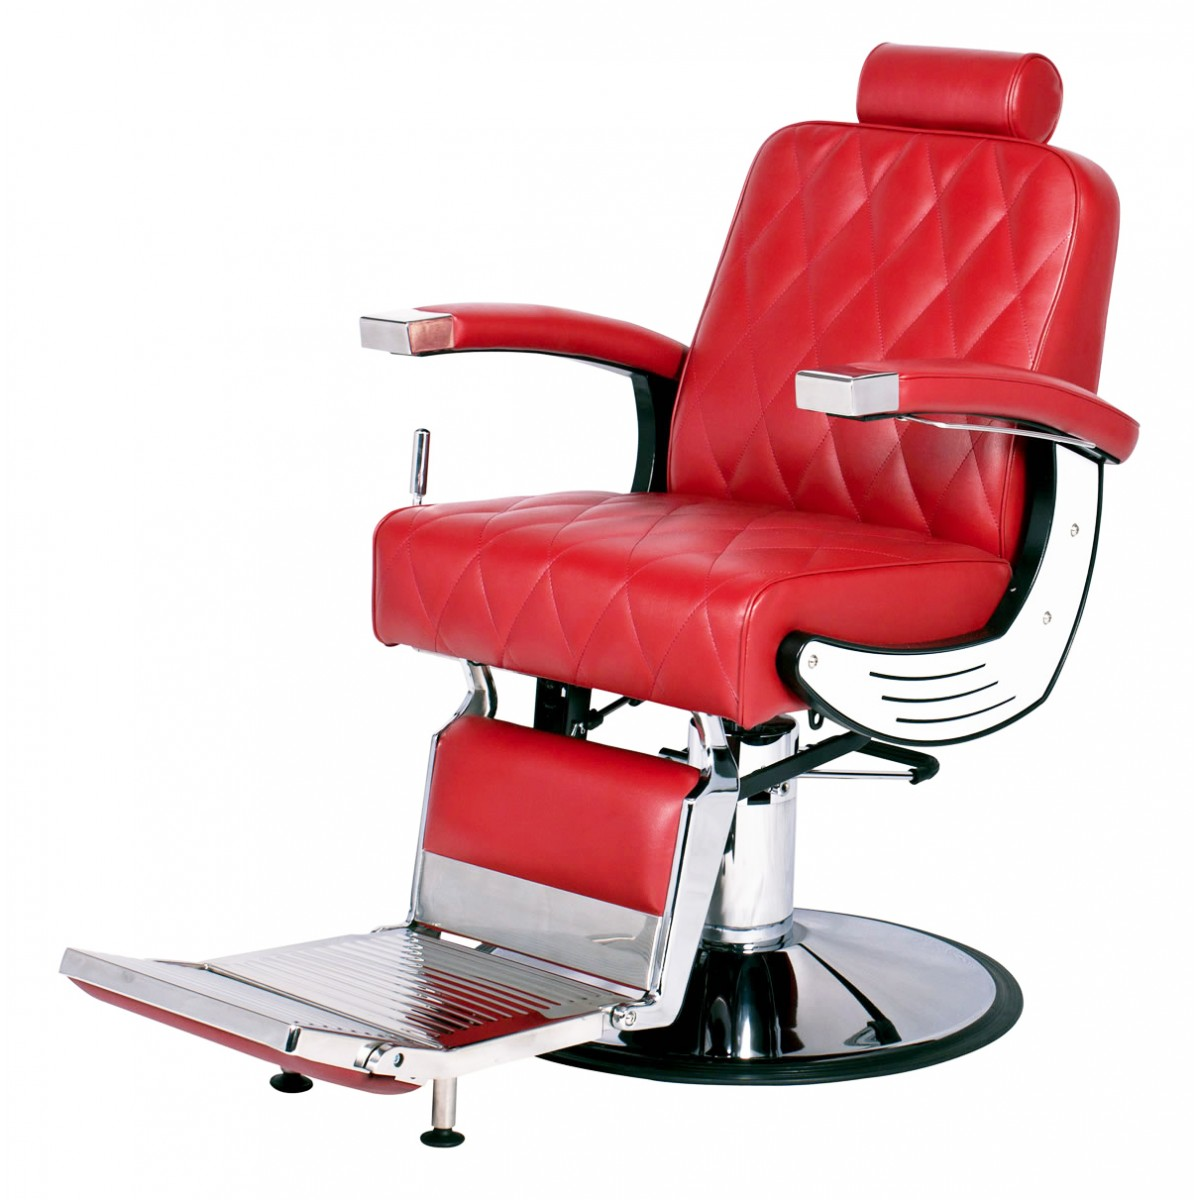 Barber Shop Chairs For Sale Quotbaron Quot Heavy Duty Barber Chair Barber Shop Chairs